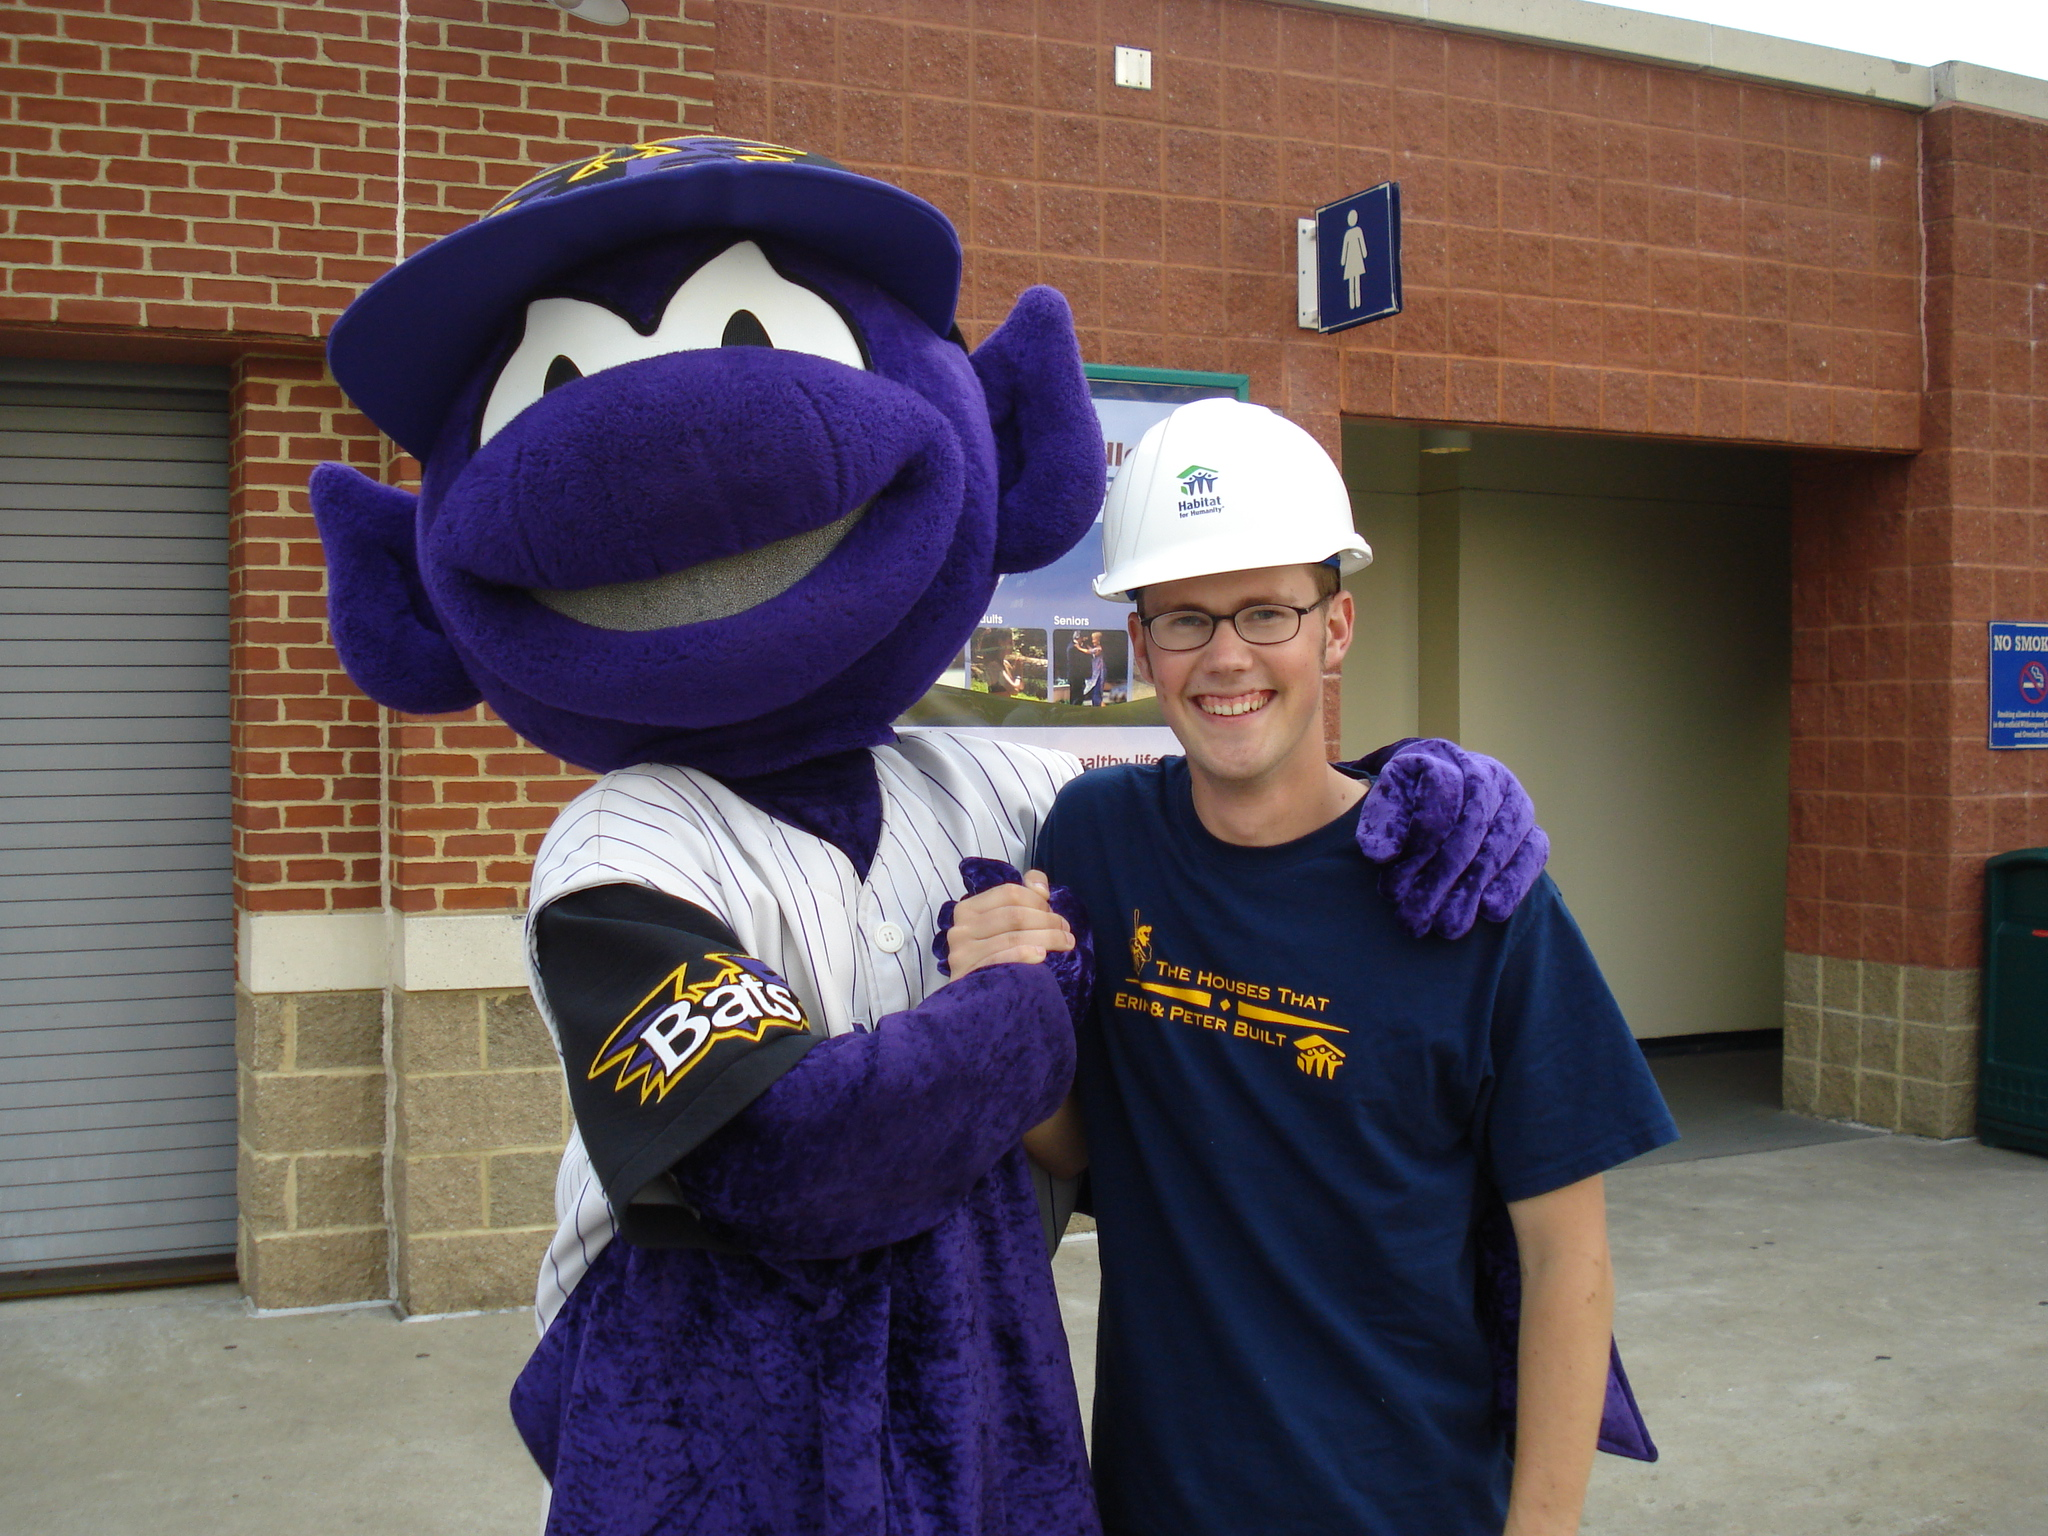 Design your own t shirt louisville ky - Habitat For Humanity Fundraising With The Louisville Bats T Shirt Photo